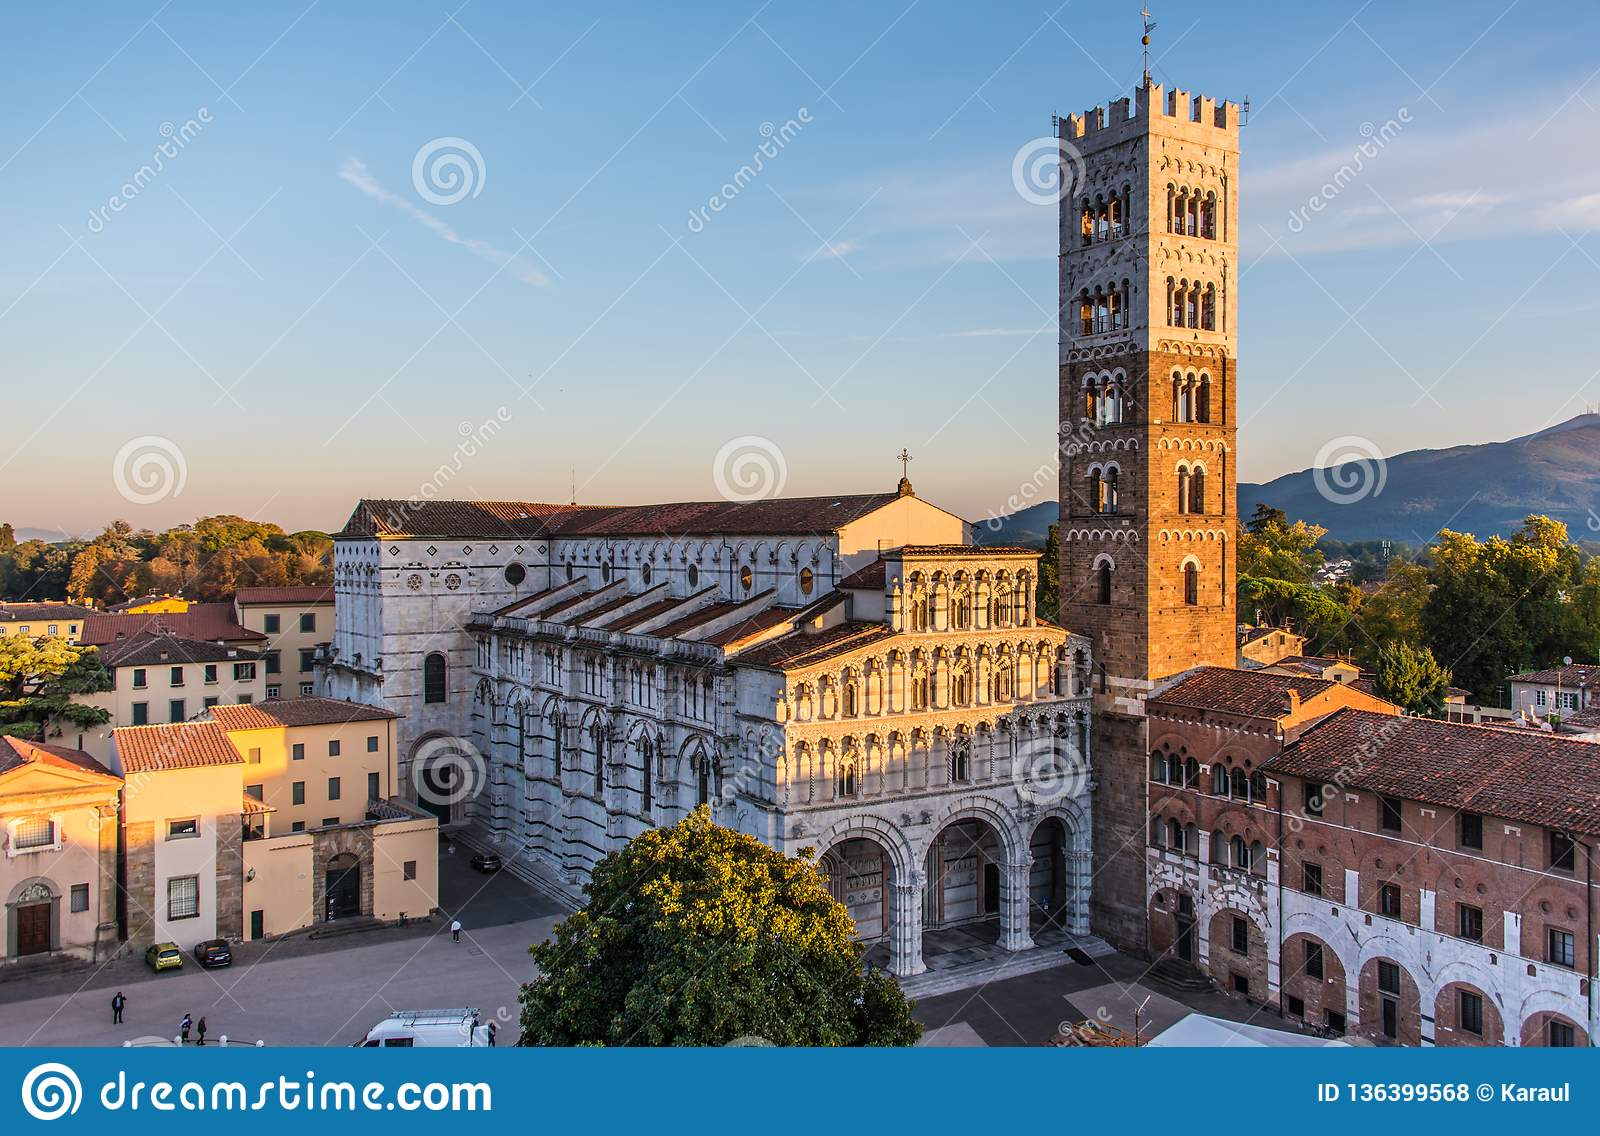 Kathedraal Van Lucca.Cathedral Of San Maritino In Lucca Italy Stock Photo